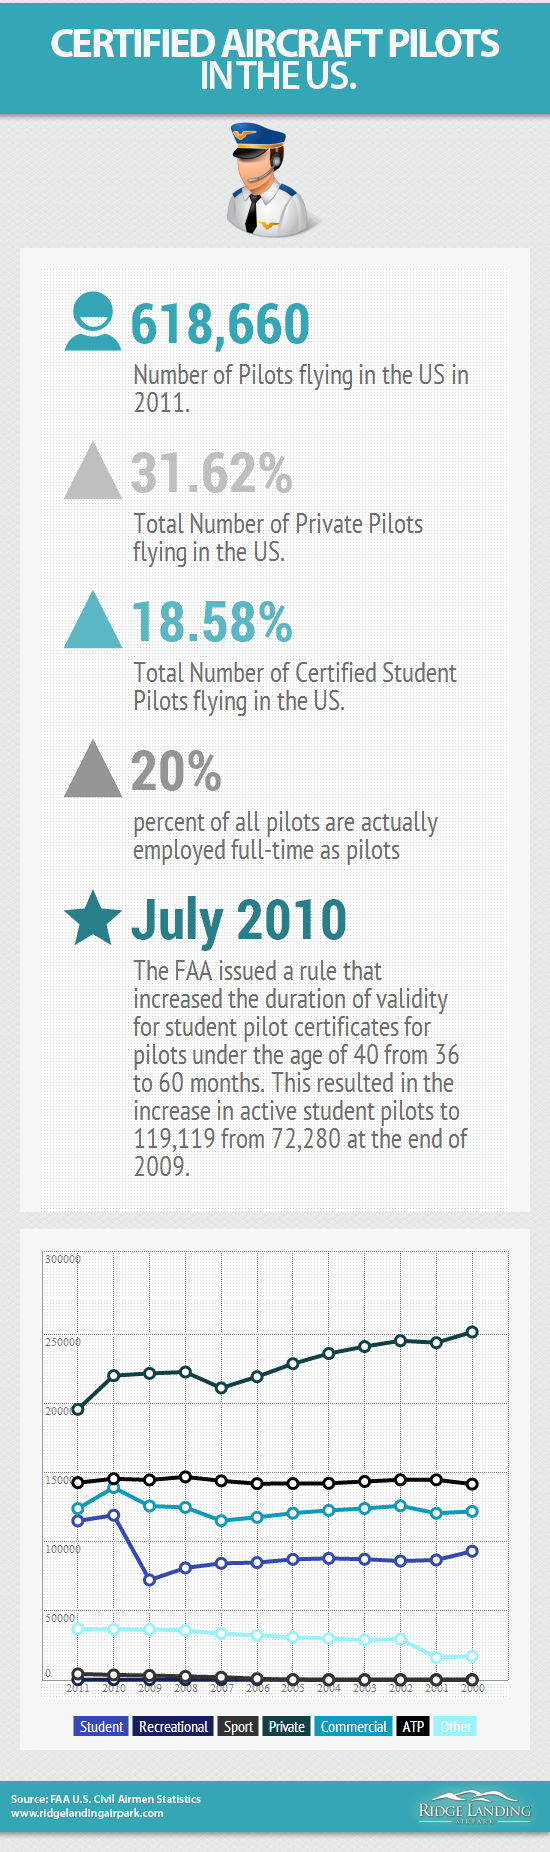 Certified Aircraft Pilots In the United States Infographic